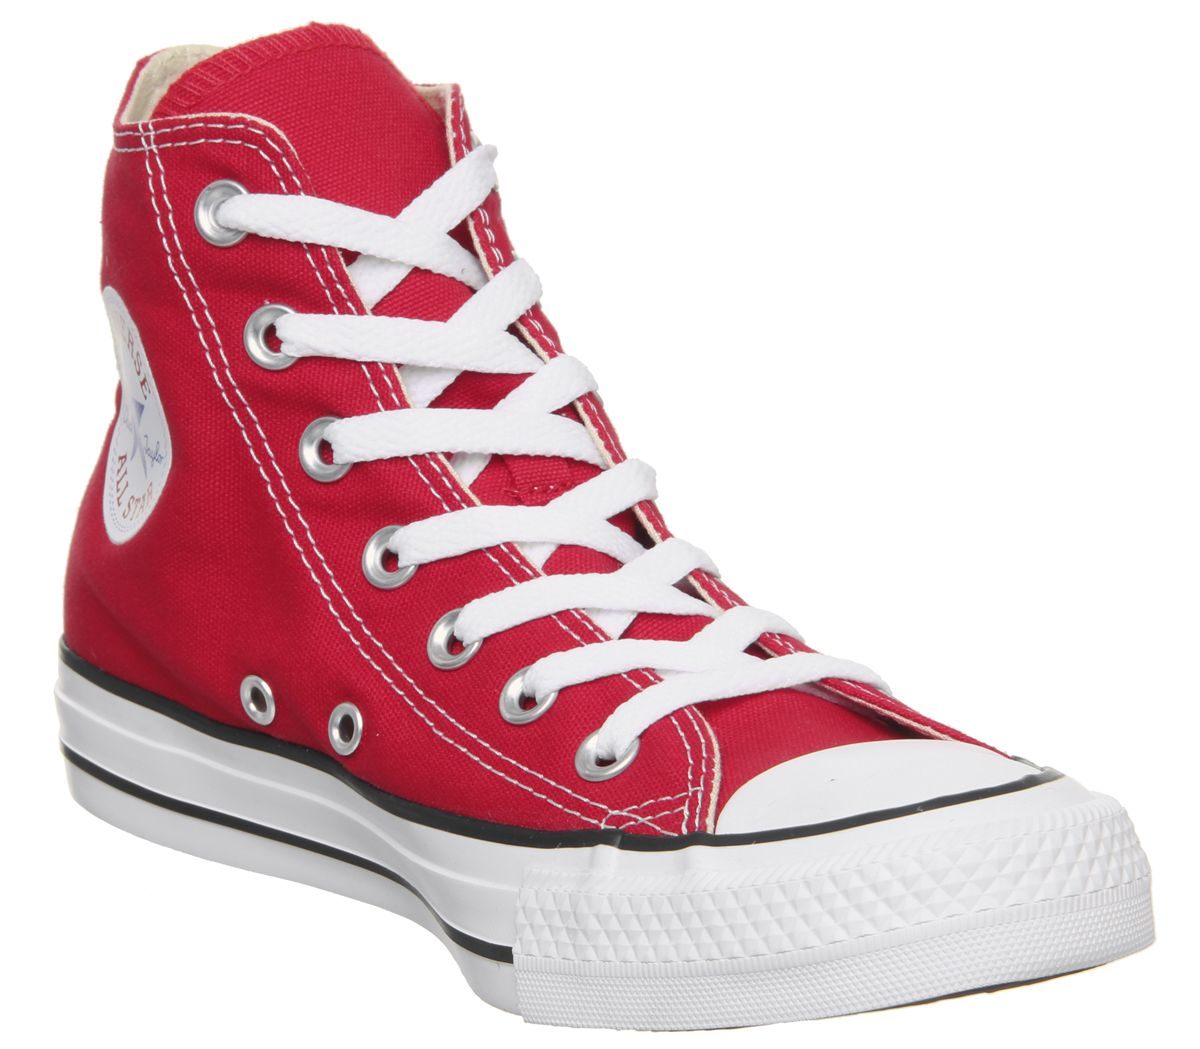 newest collection 8b50b 8b81e Converse All Star Hi Red Canvas - Unisex Sports